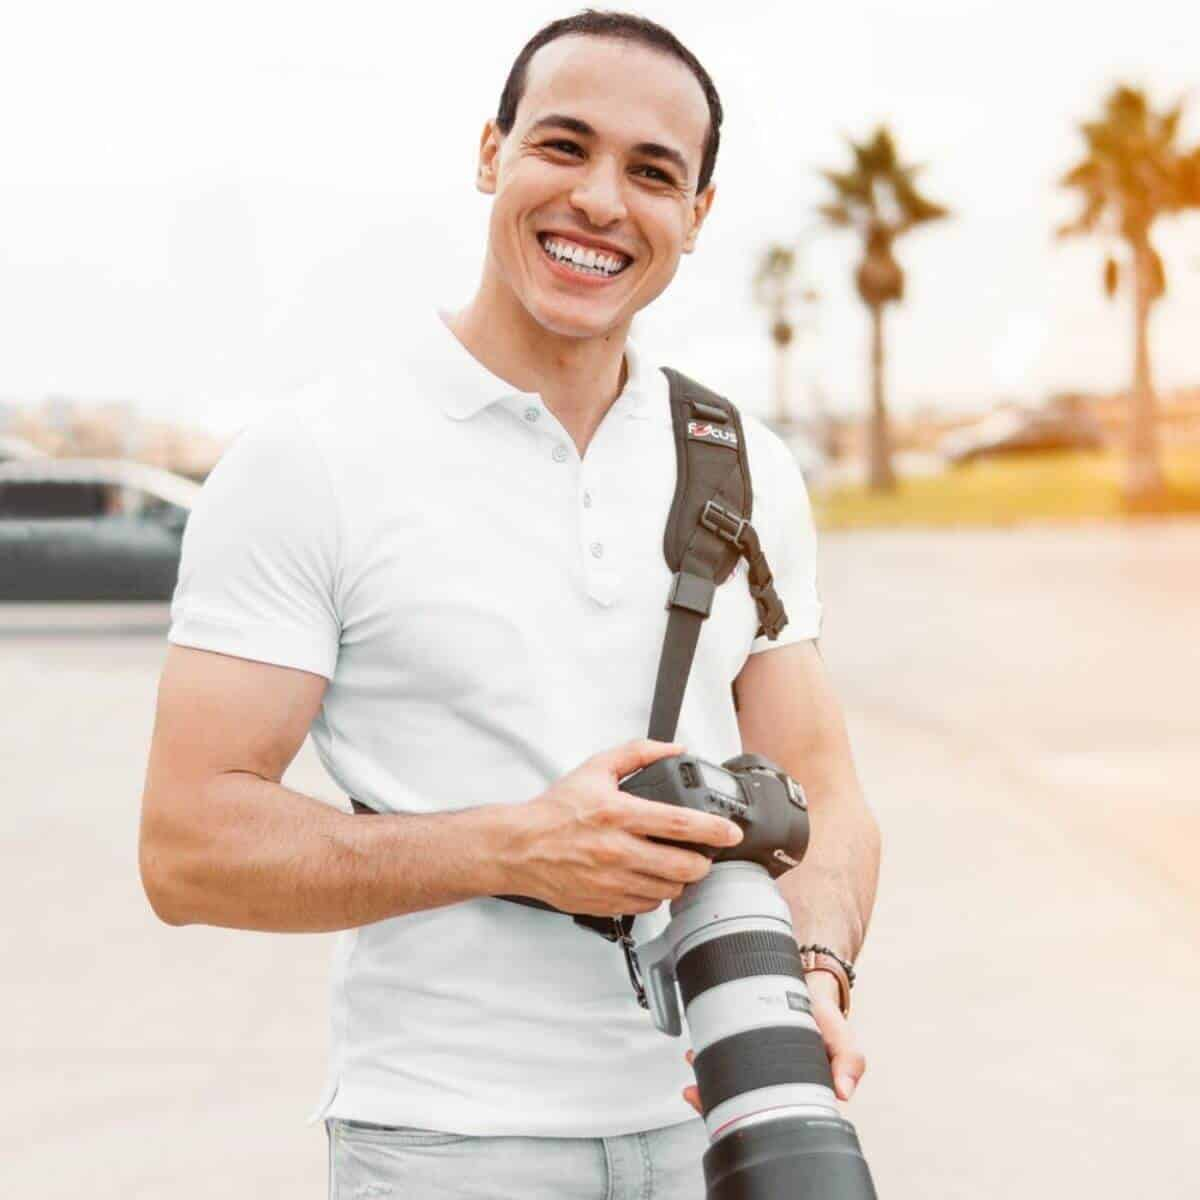 Photographer smiling while holding a camera.